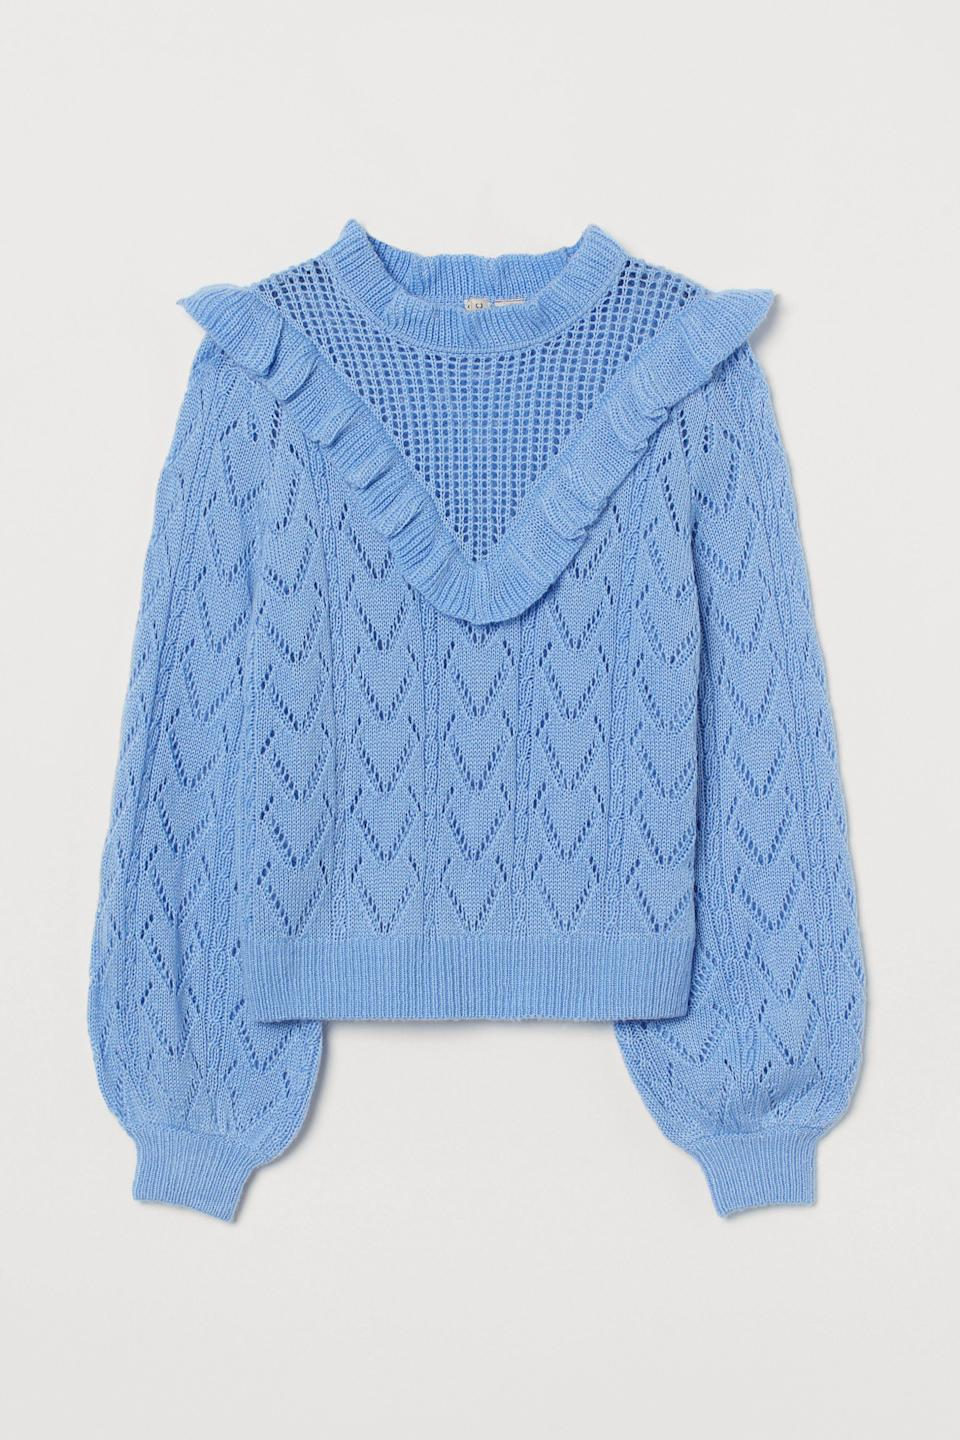 """<p><strong>H&M</strong></p><p>hm.com</p><p><strong>$34.99</strong></p><p><a href=""""https://go.redirectingat.com?id=74968X1596630&url=https%3A%2F%2Fwww2.hm.com%2Fen_us%2Fproductpage.0903266004.html&sref=https%3A%2F%2Fwww.elle.com%2Ffashion%2Fshopping%2Fg27038%2Fbest-fall-sweaters%2F"""" rel=""""nofollow noopener"""" target=""""_blank"""" data-ylk=""""slk:Shop Now"""" class=""""link rapid-noclick-resp"""">Shop Now</a></p><p>There's no such thing as too many ruffles. </p>"""